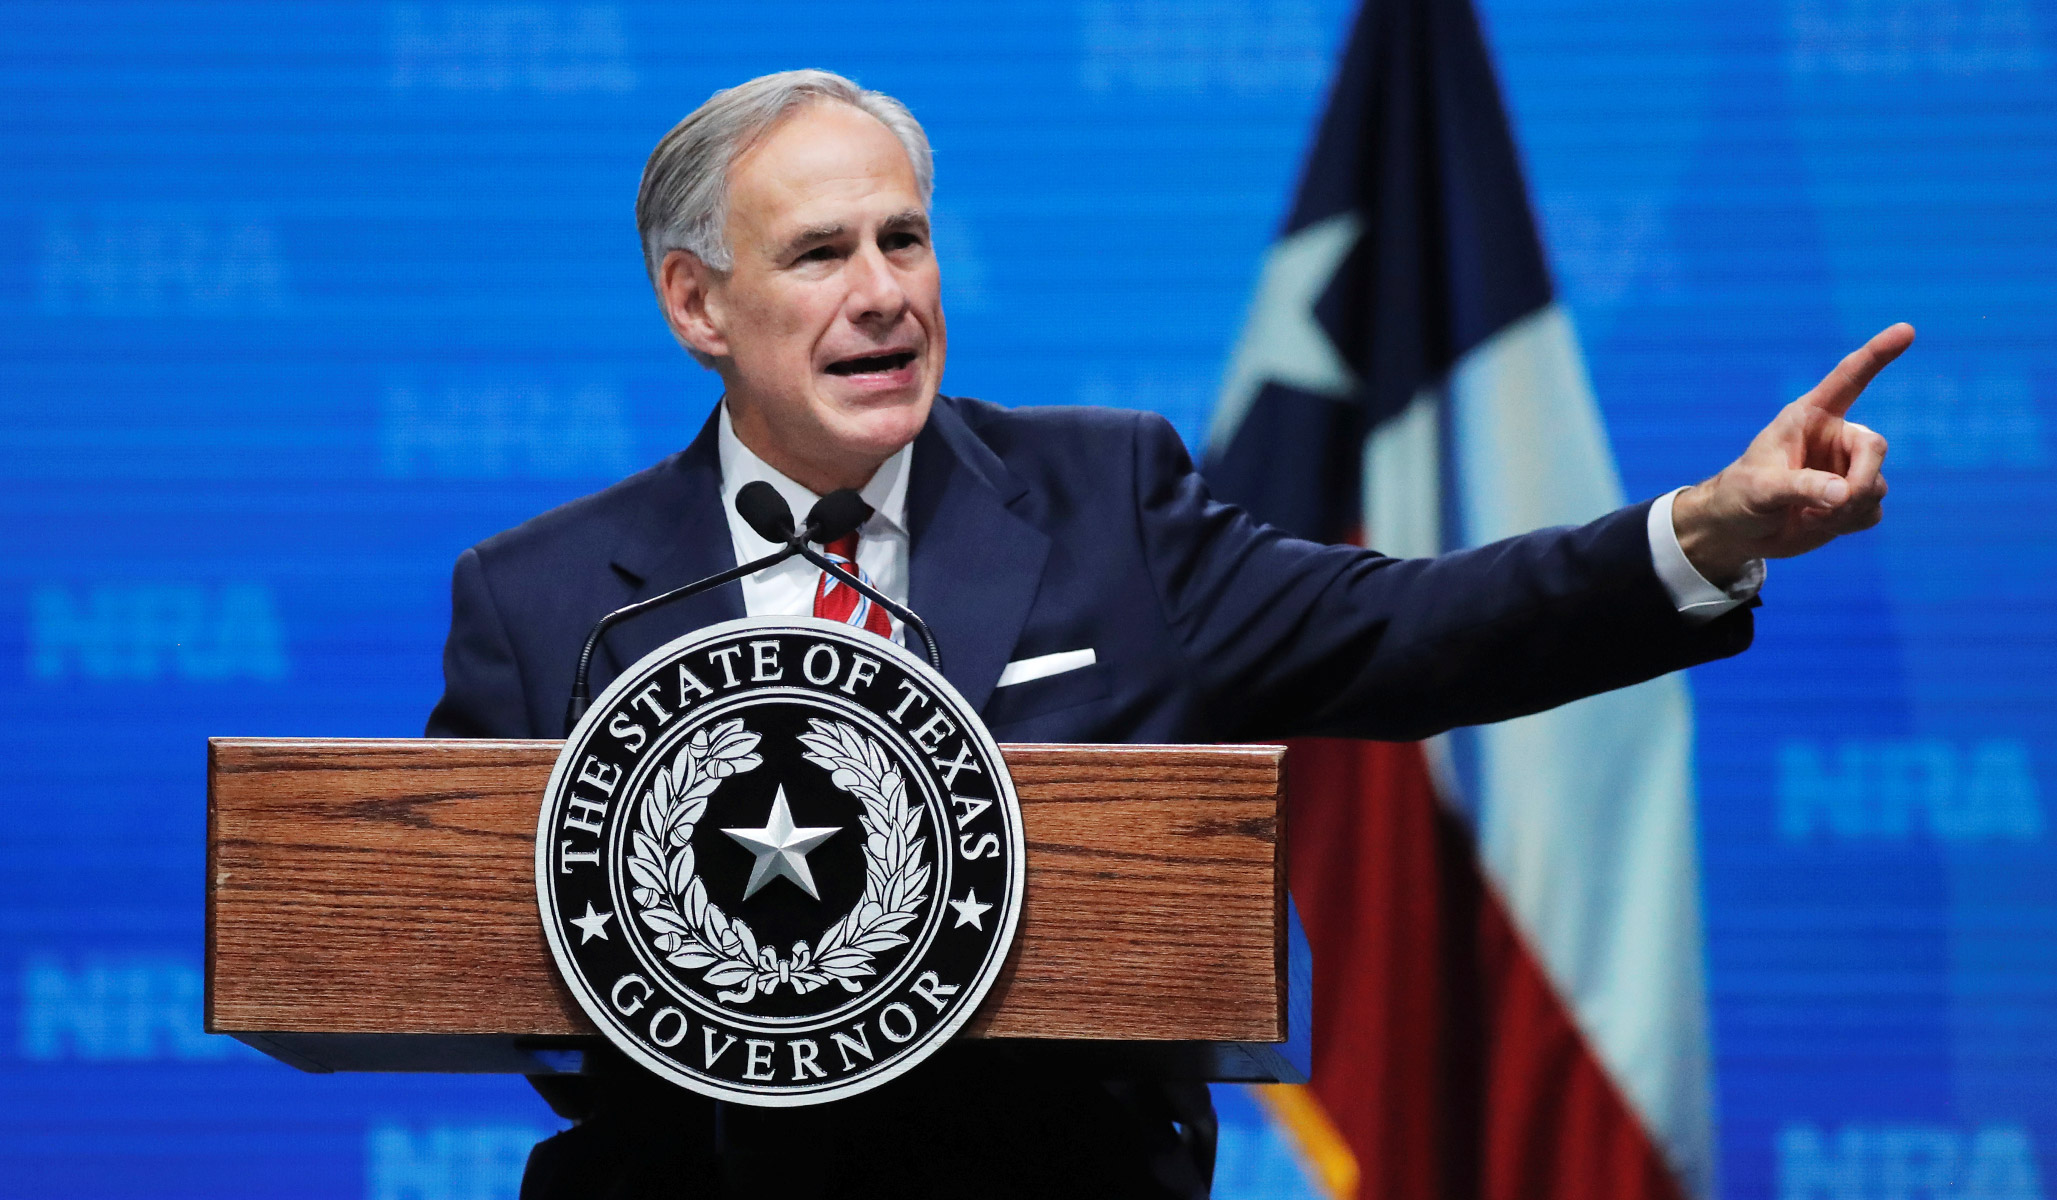 Texas Governor: Coronavirus Spreading at 'Unacceptable Rate' in State thumbnail